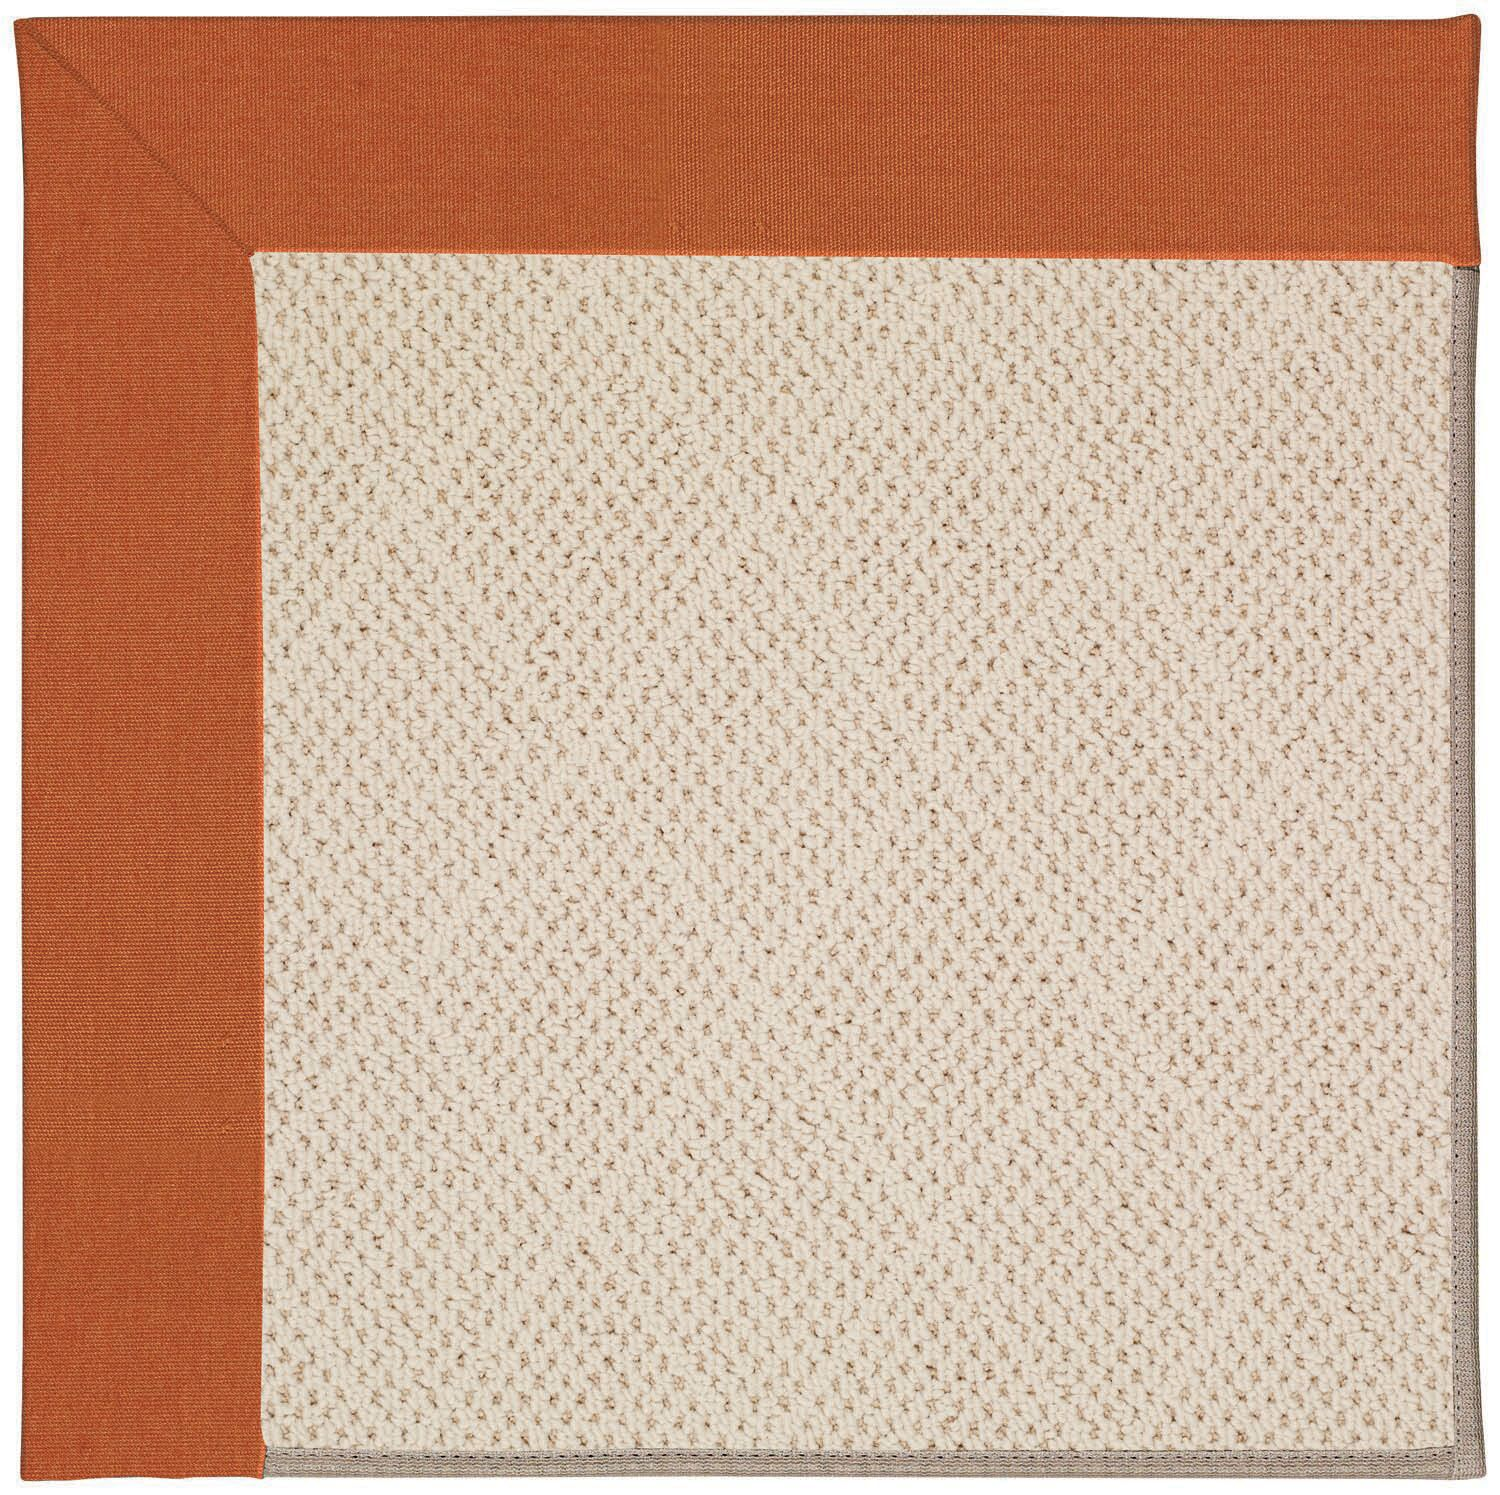 Lisle Cream Indoor/Outdoor Area Rug Rug Size: Square 12'